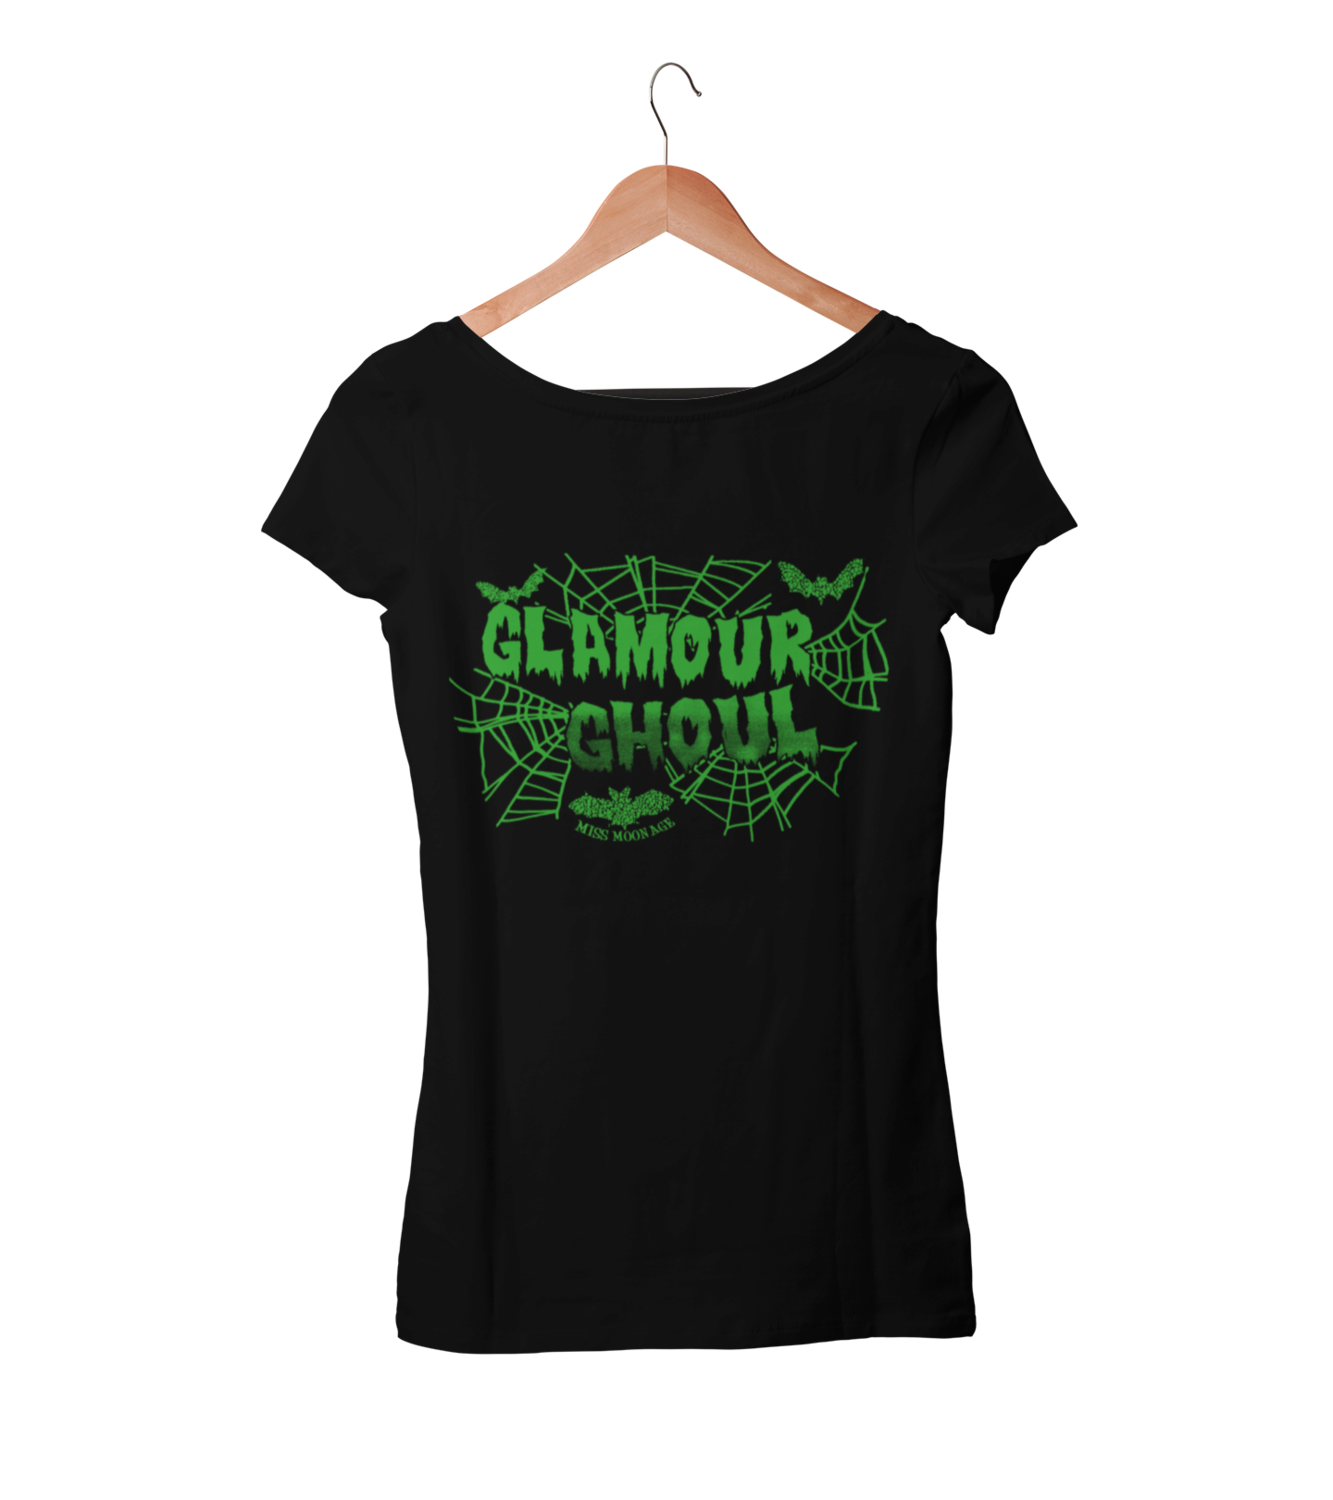 GLAMOUR GHOUL by MISS MOONAGE tshirt for WOMEN